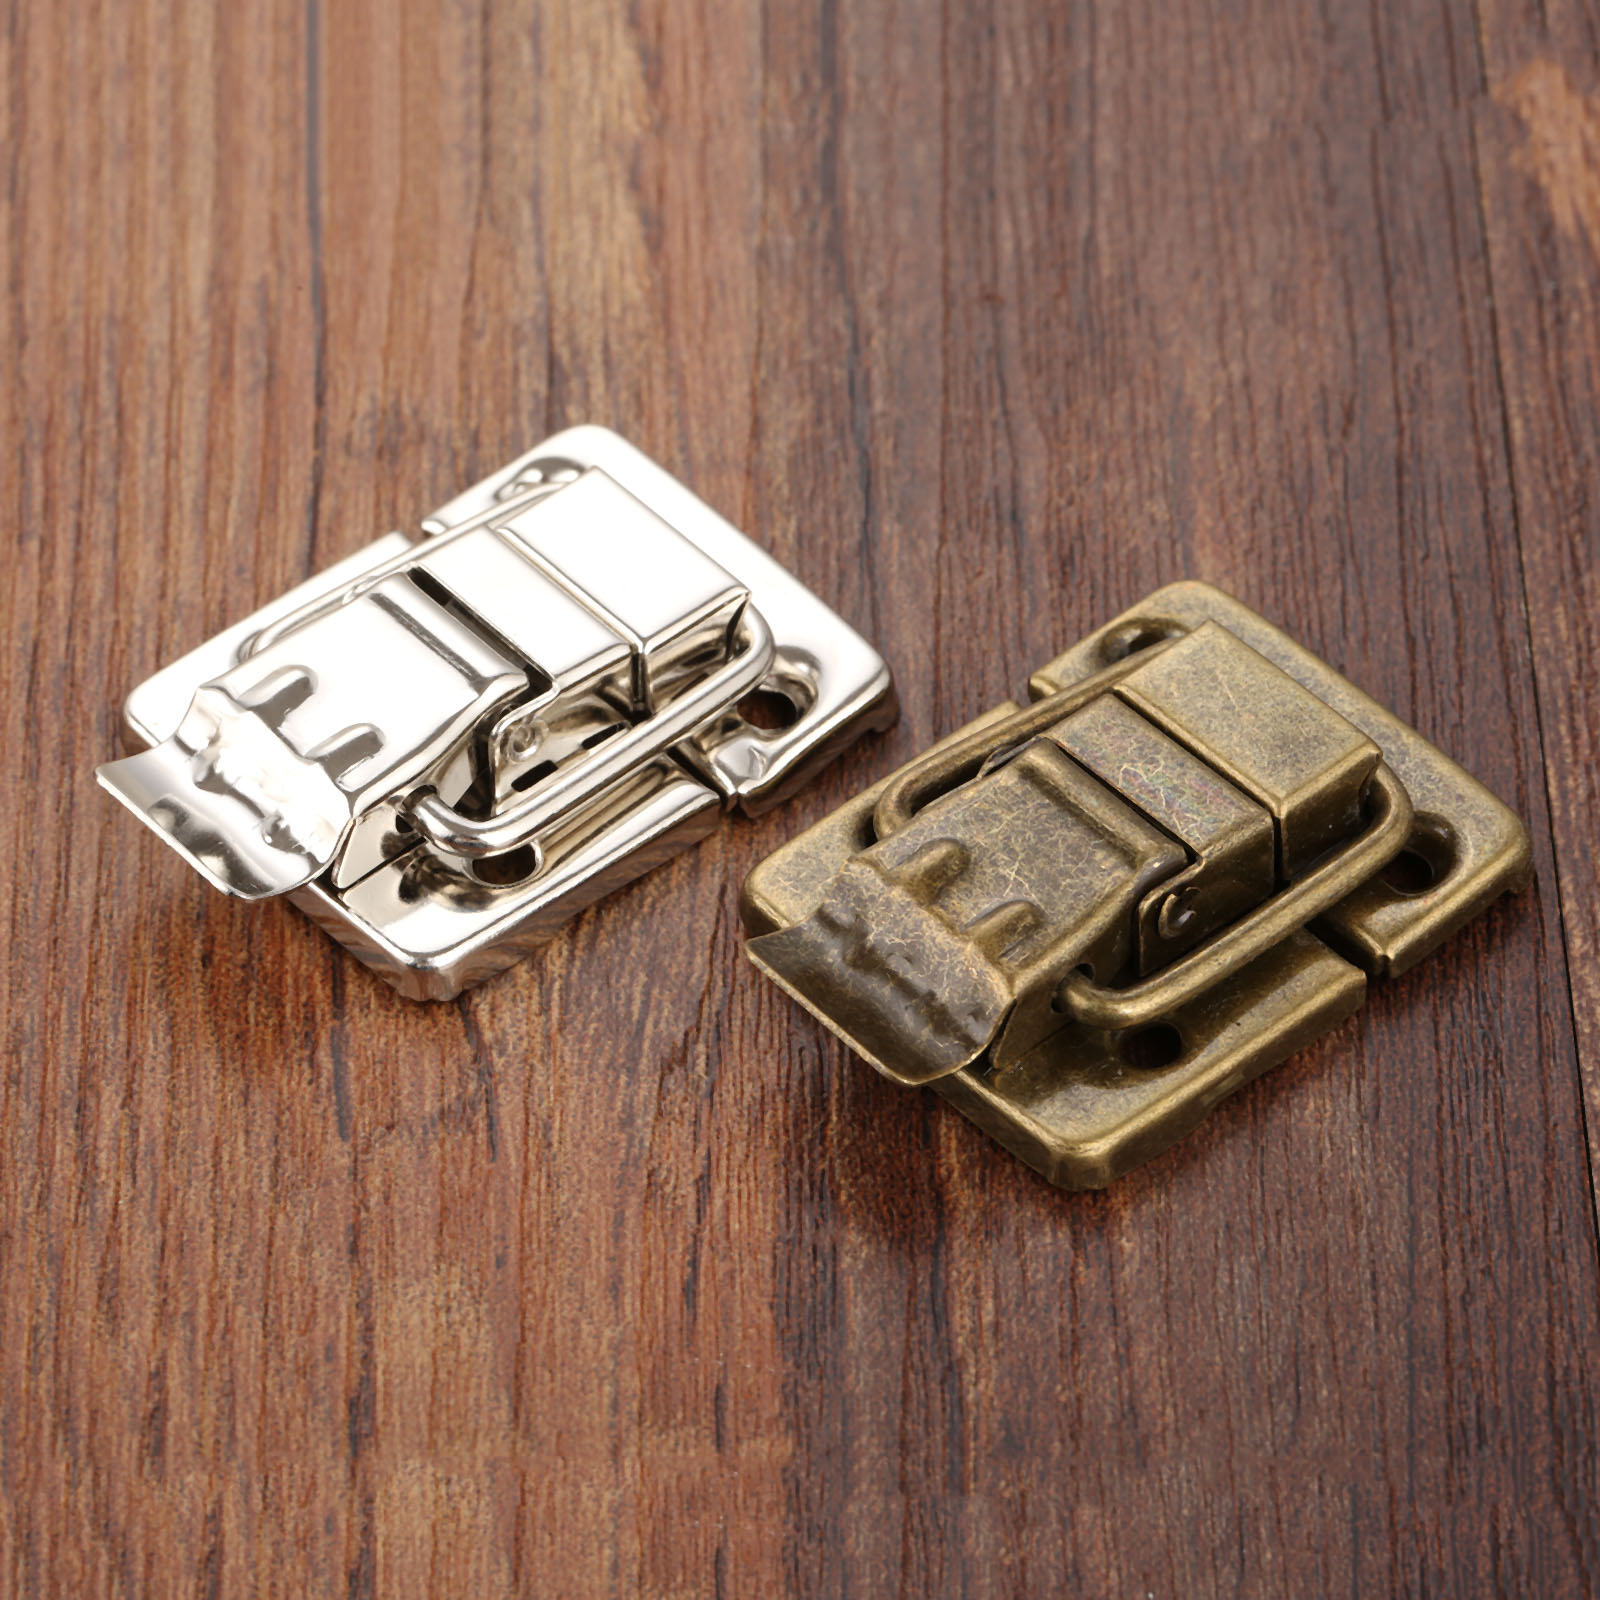 1Pc Jewelry Wood Box Toggle Latch Hasp Drawer Latches Decorative Suitcases Buckle Clasp Furniture Hardware 30*36mm